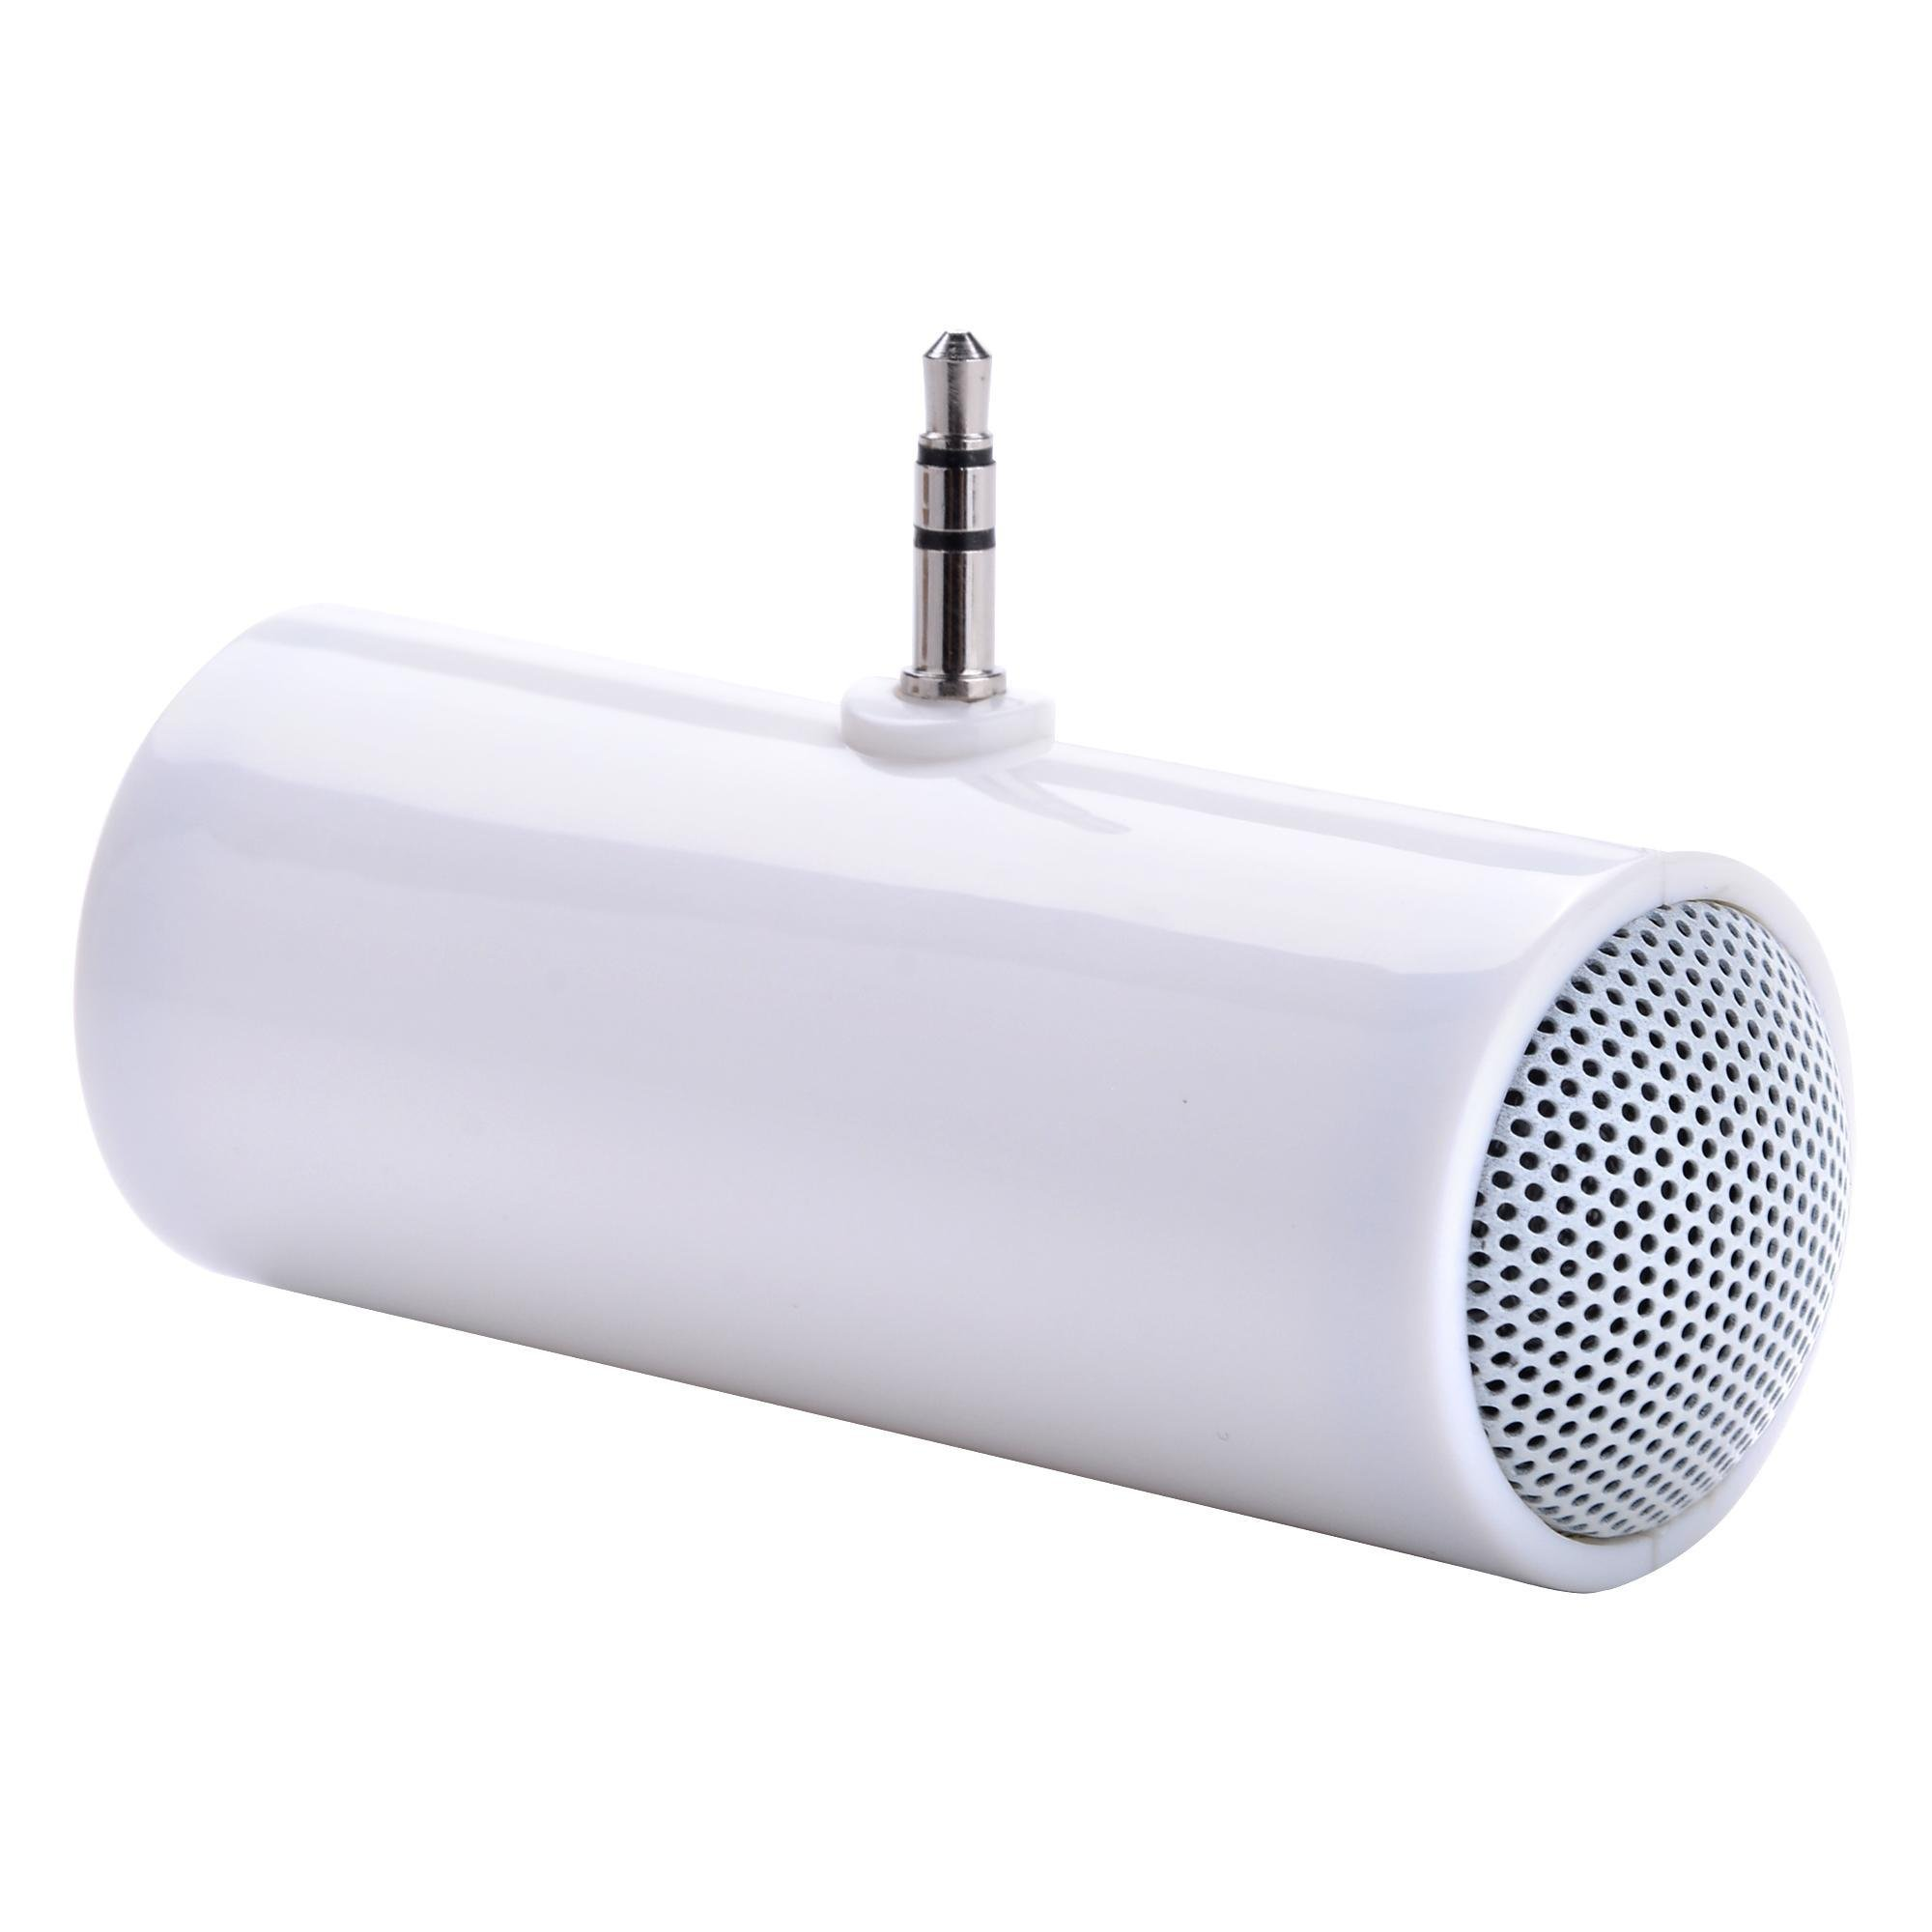 Suines Portable Mini 3.5mm Speaker Small White Stereo Speaker for Smartphone Moblie Phone MP3 MP4 Player Tablet PC Computer Notebook Laptop Promotional Gift